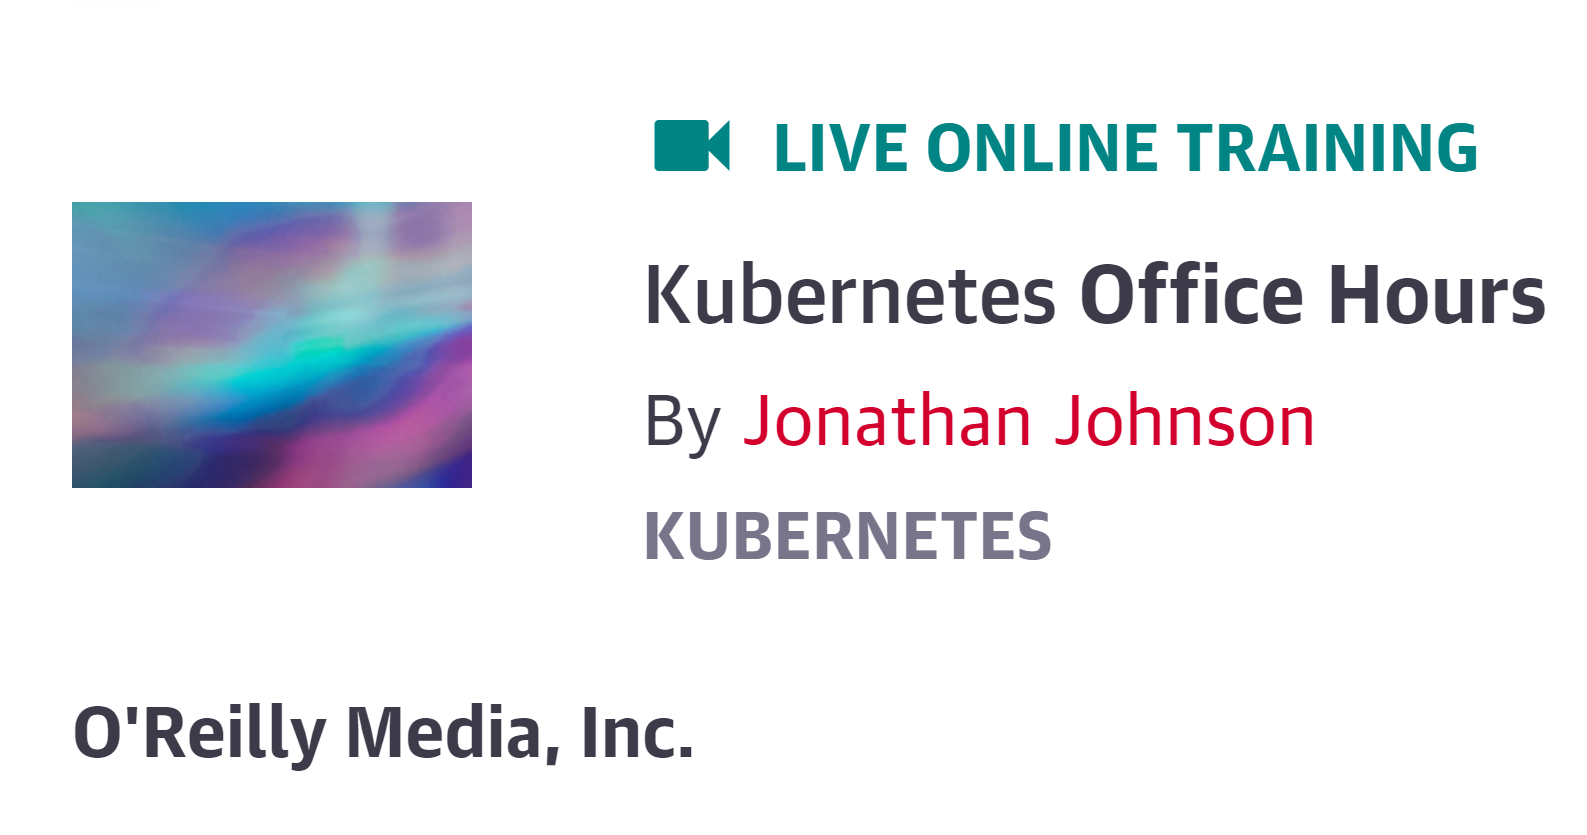 Kubernetes Office Hours